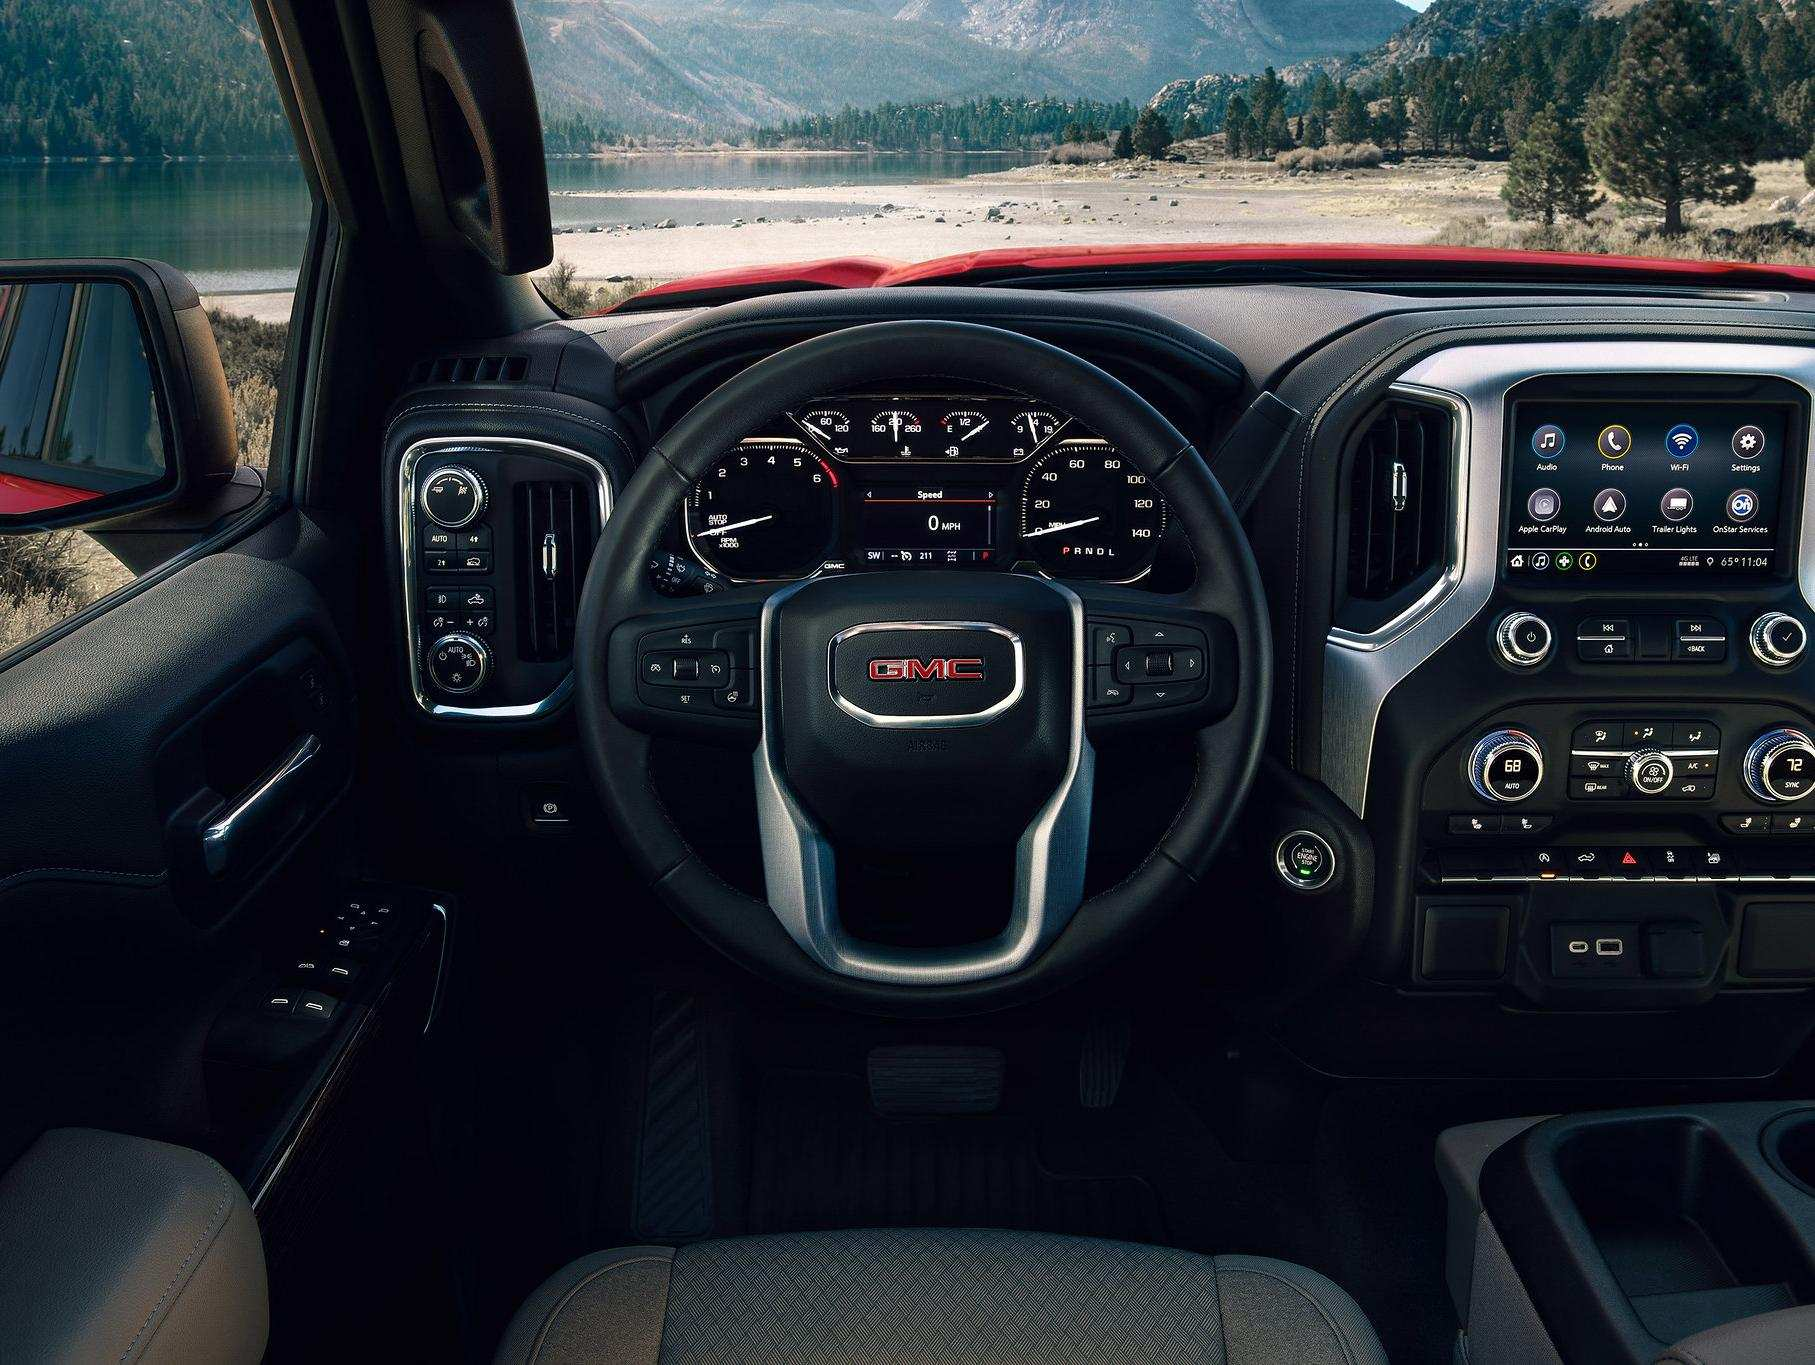 67 All New 2019 Gmc 1500 Interior Overview